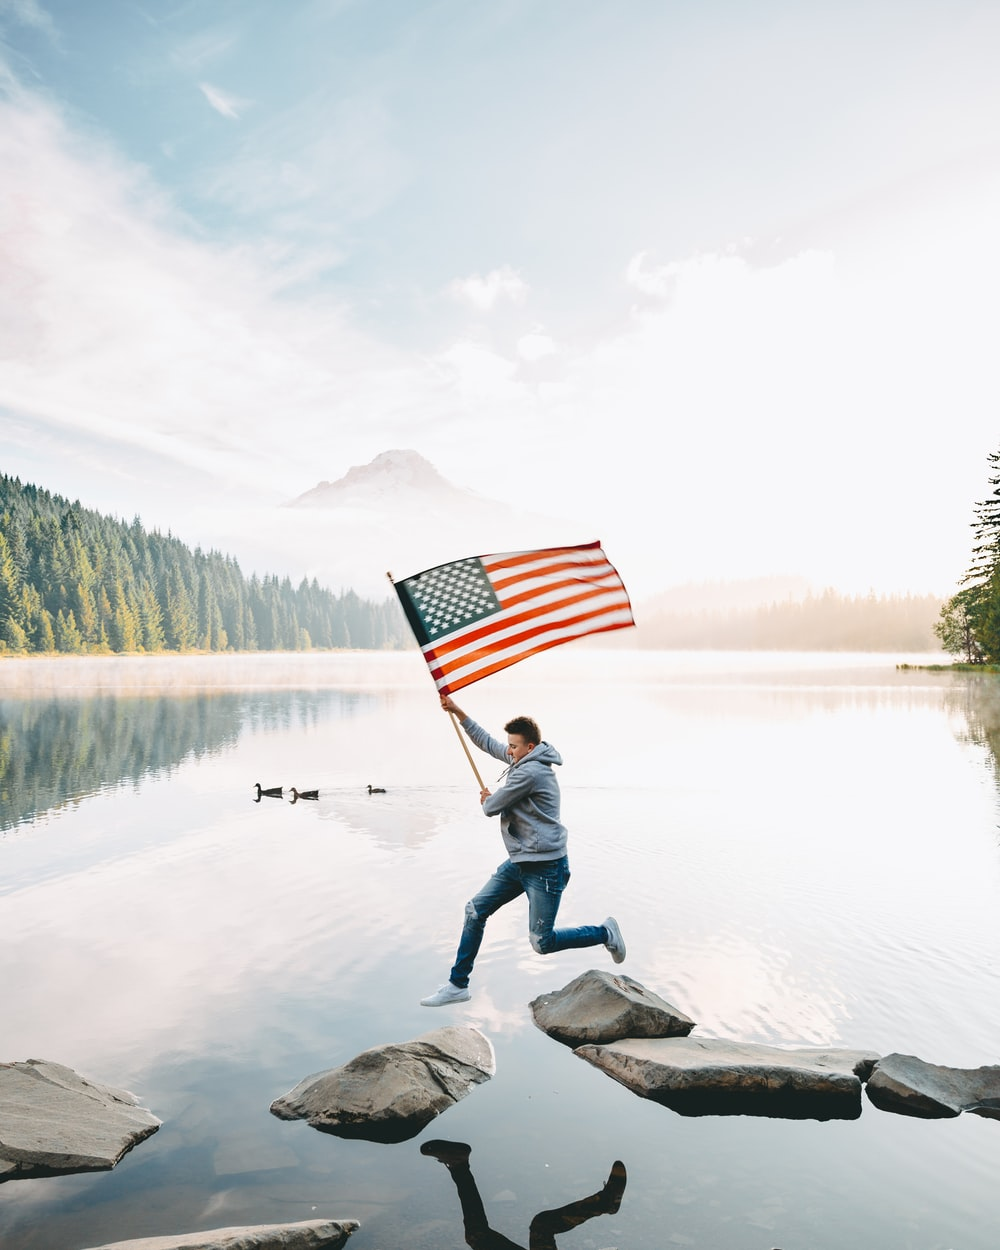 person holding us a flag standing on rock near lake during daytime